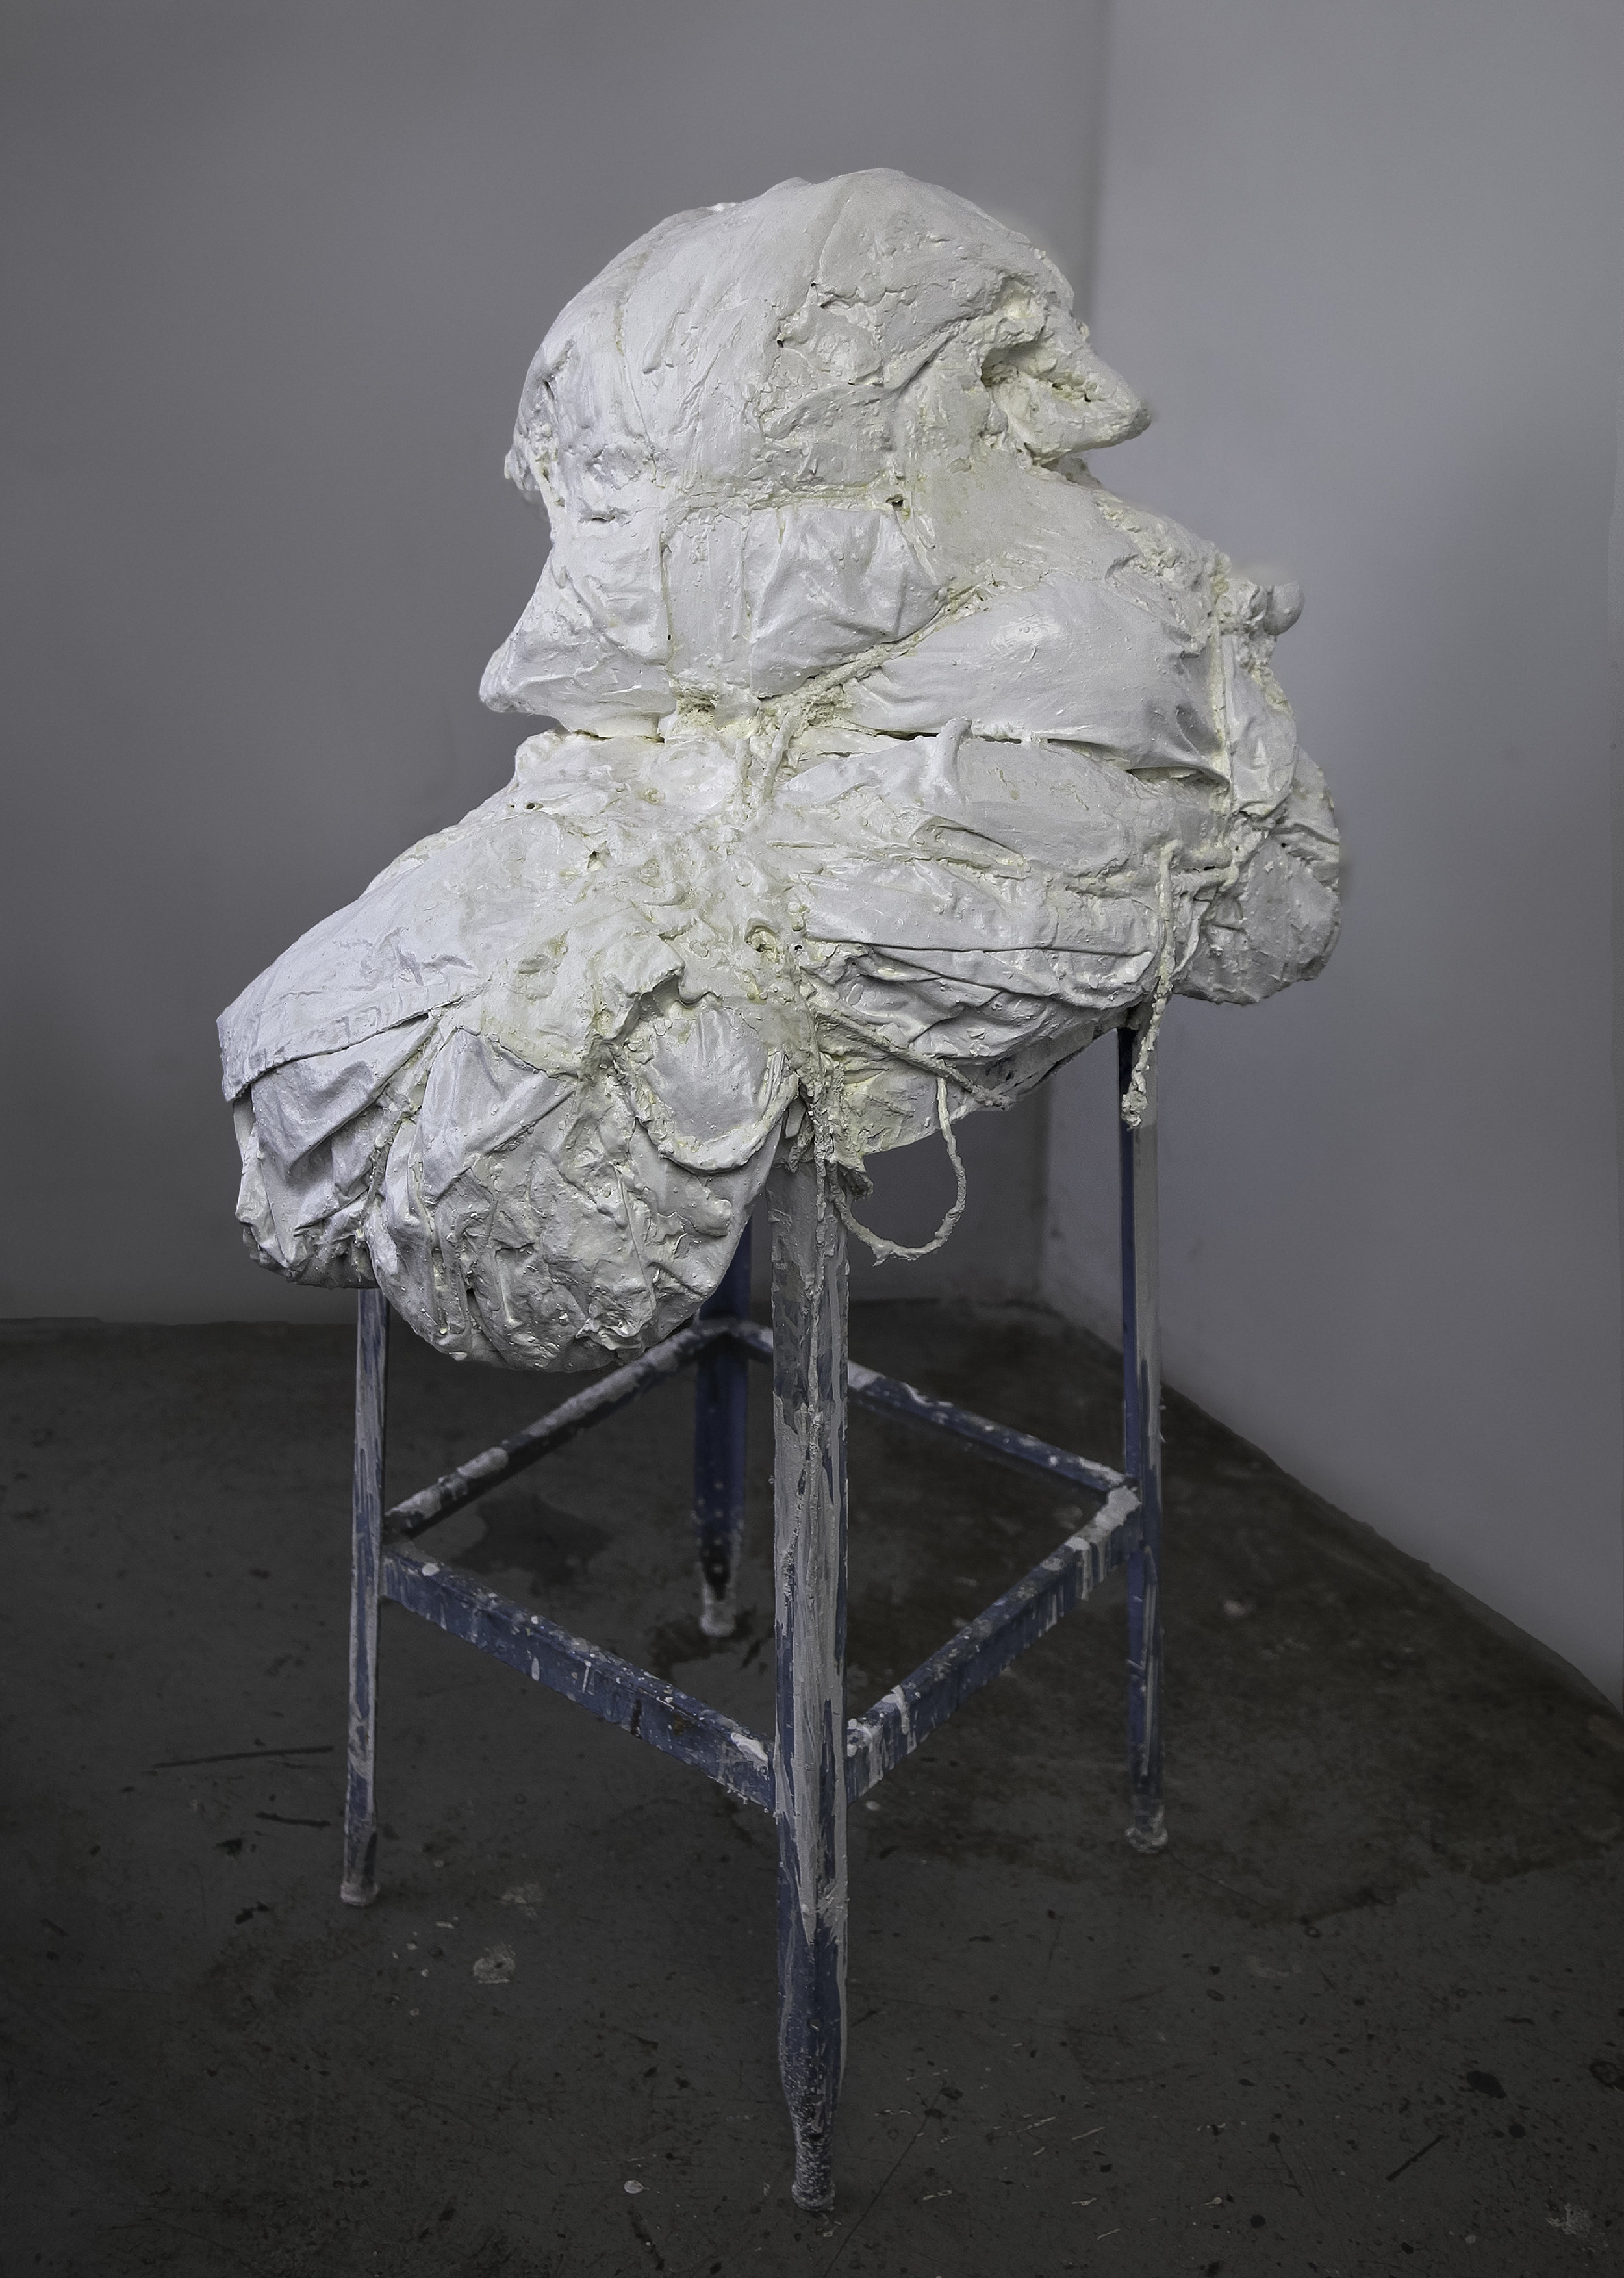 Permanence,   2016. Fabric, cord, plaster and found object, 25 x 20 x 42 inches ( 63.5 x 50.8 x 106.68 cm).